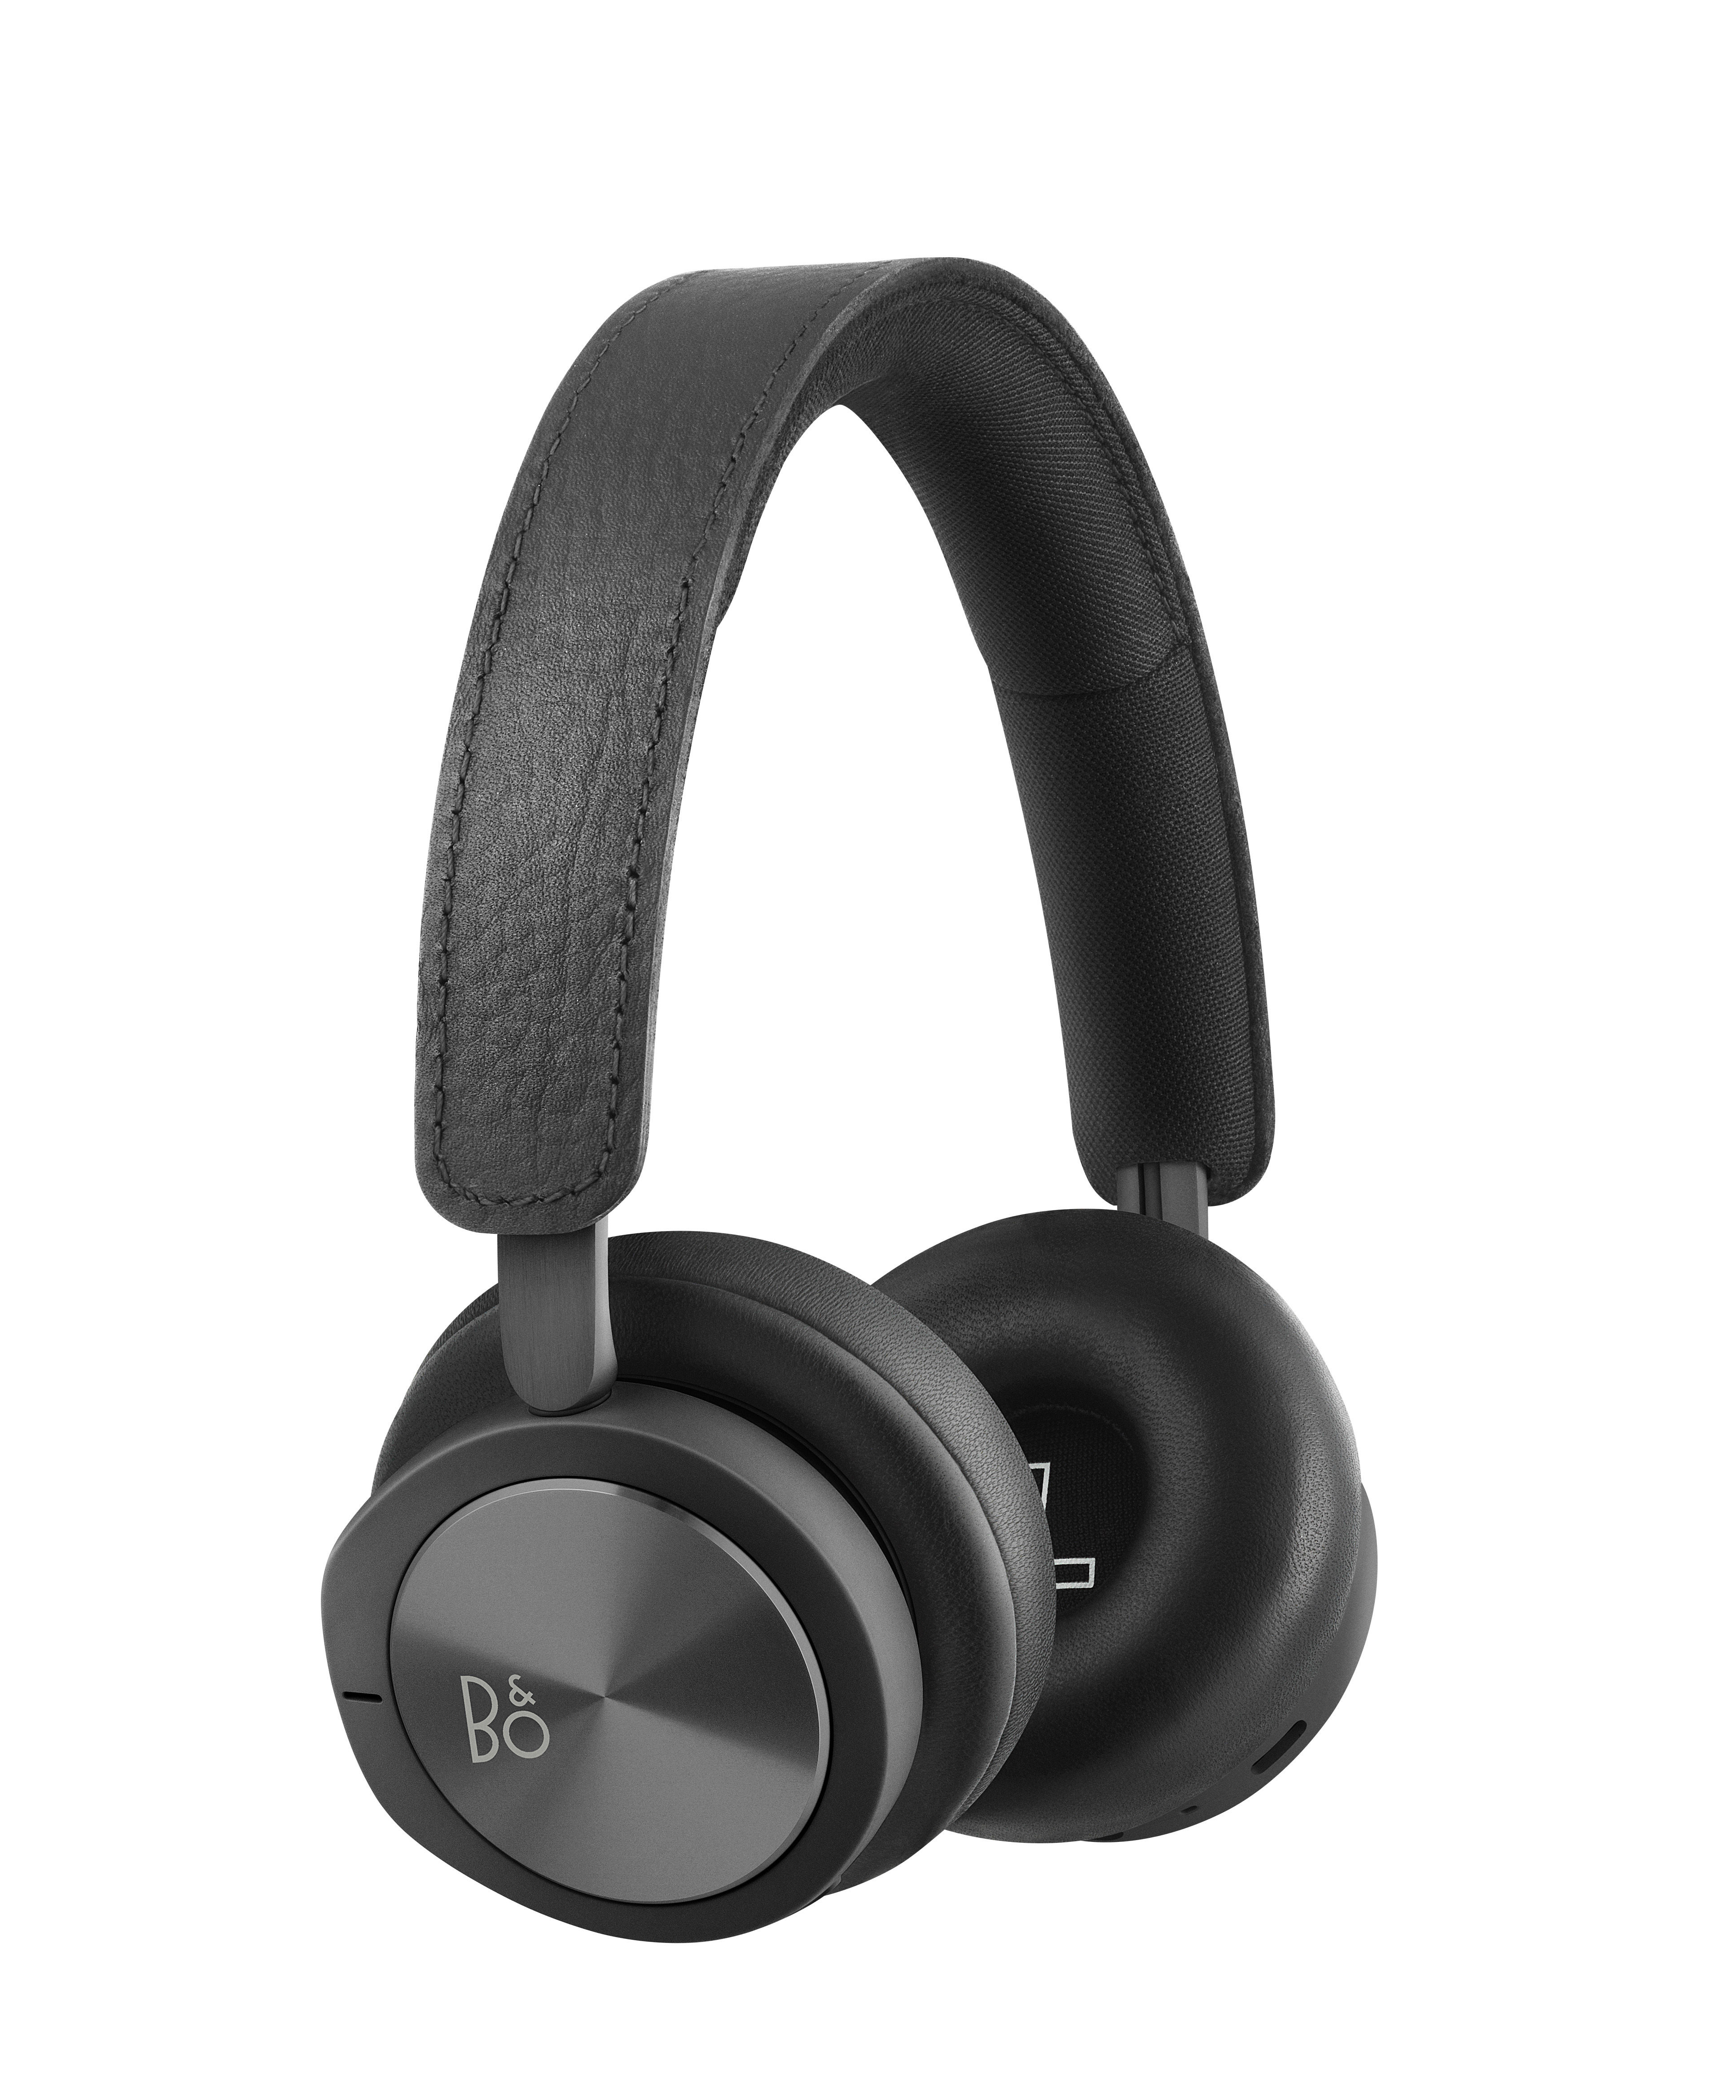 Accessories - Speakers & Audio - Beoplay H8i Wireless headphones - / Bluetooth - Active noise reduction by B&O PLAY by Bang & Olufsen - Black - Anodized aluminium, Leather